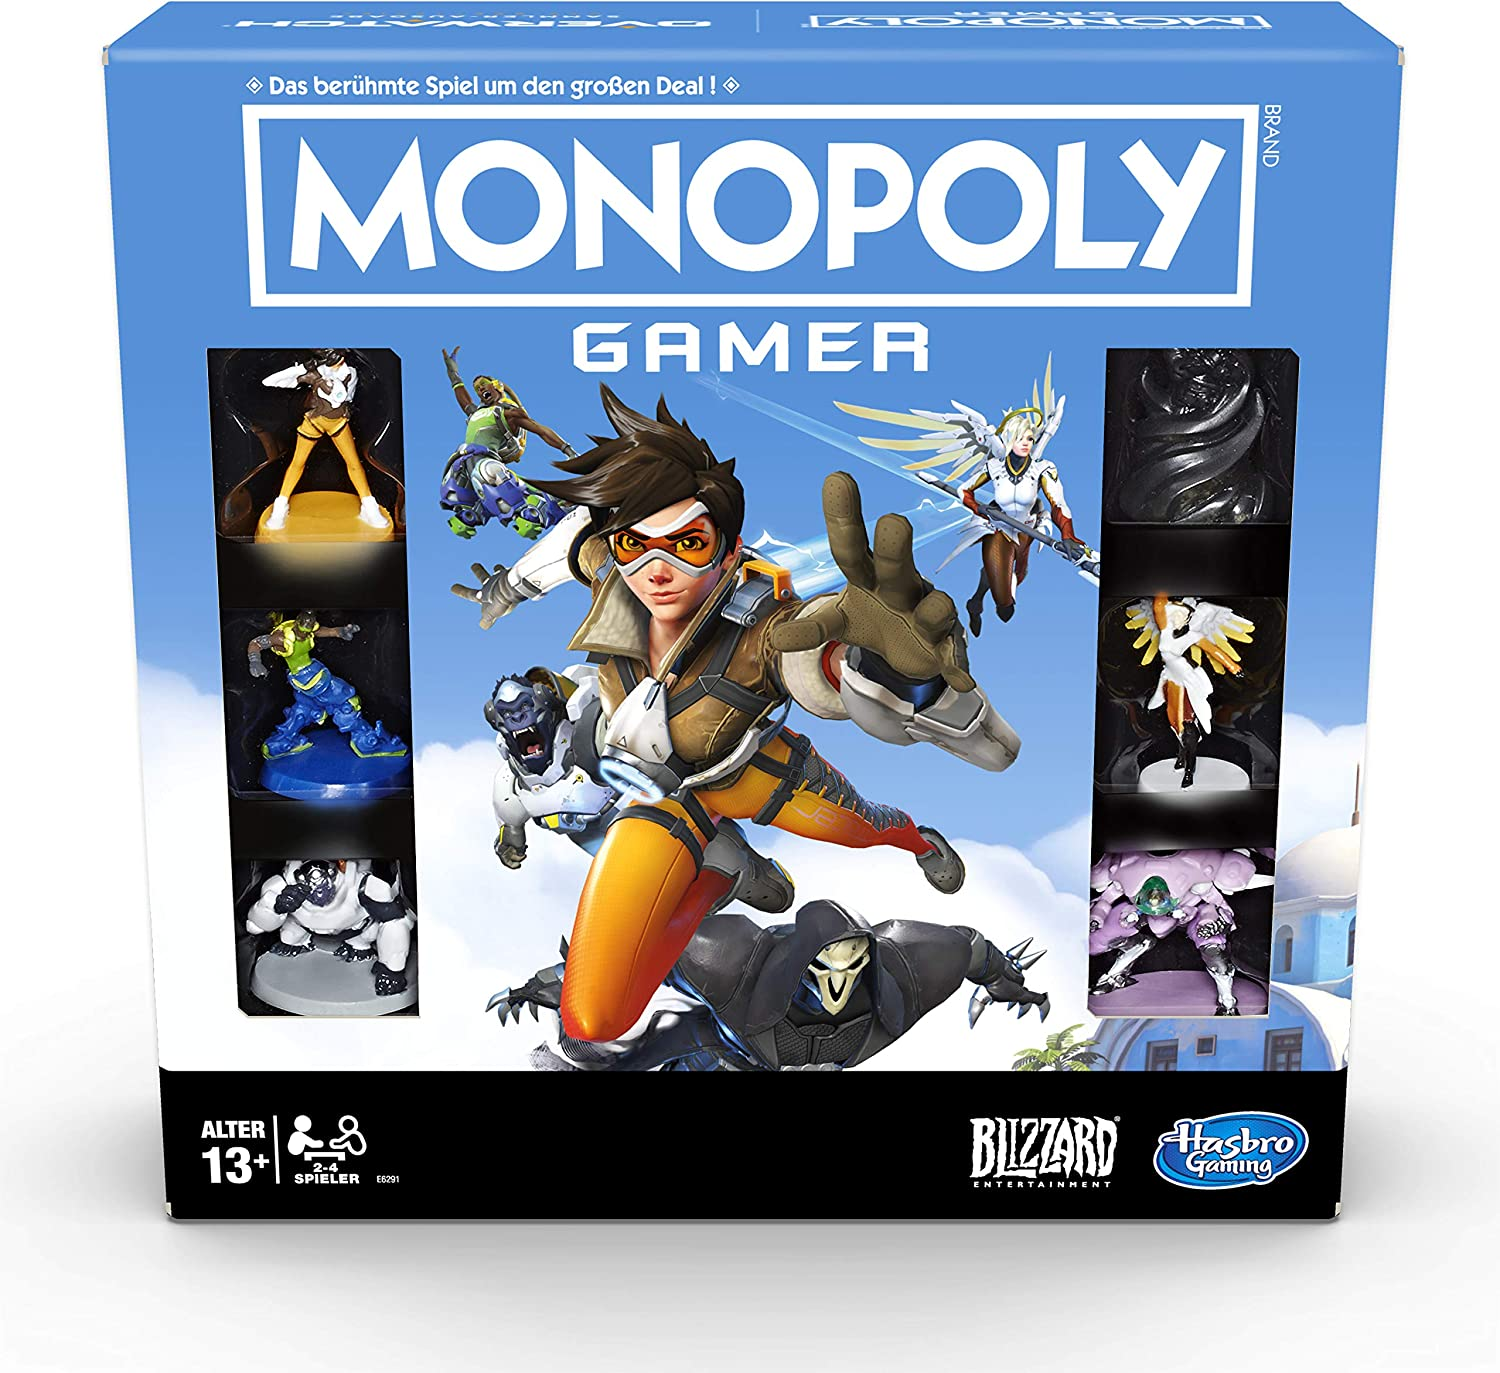 Hasbro Overwatch Board Game Monopoly Gamer *English Version* Games Accessories: Amazon.es: Juguetes y juegos